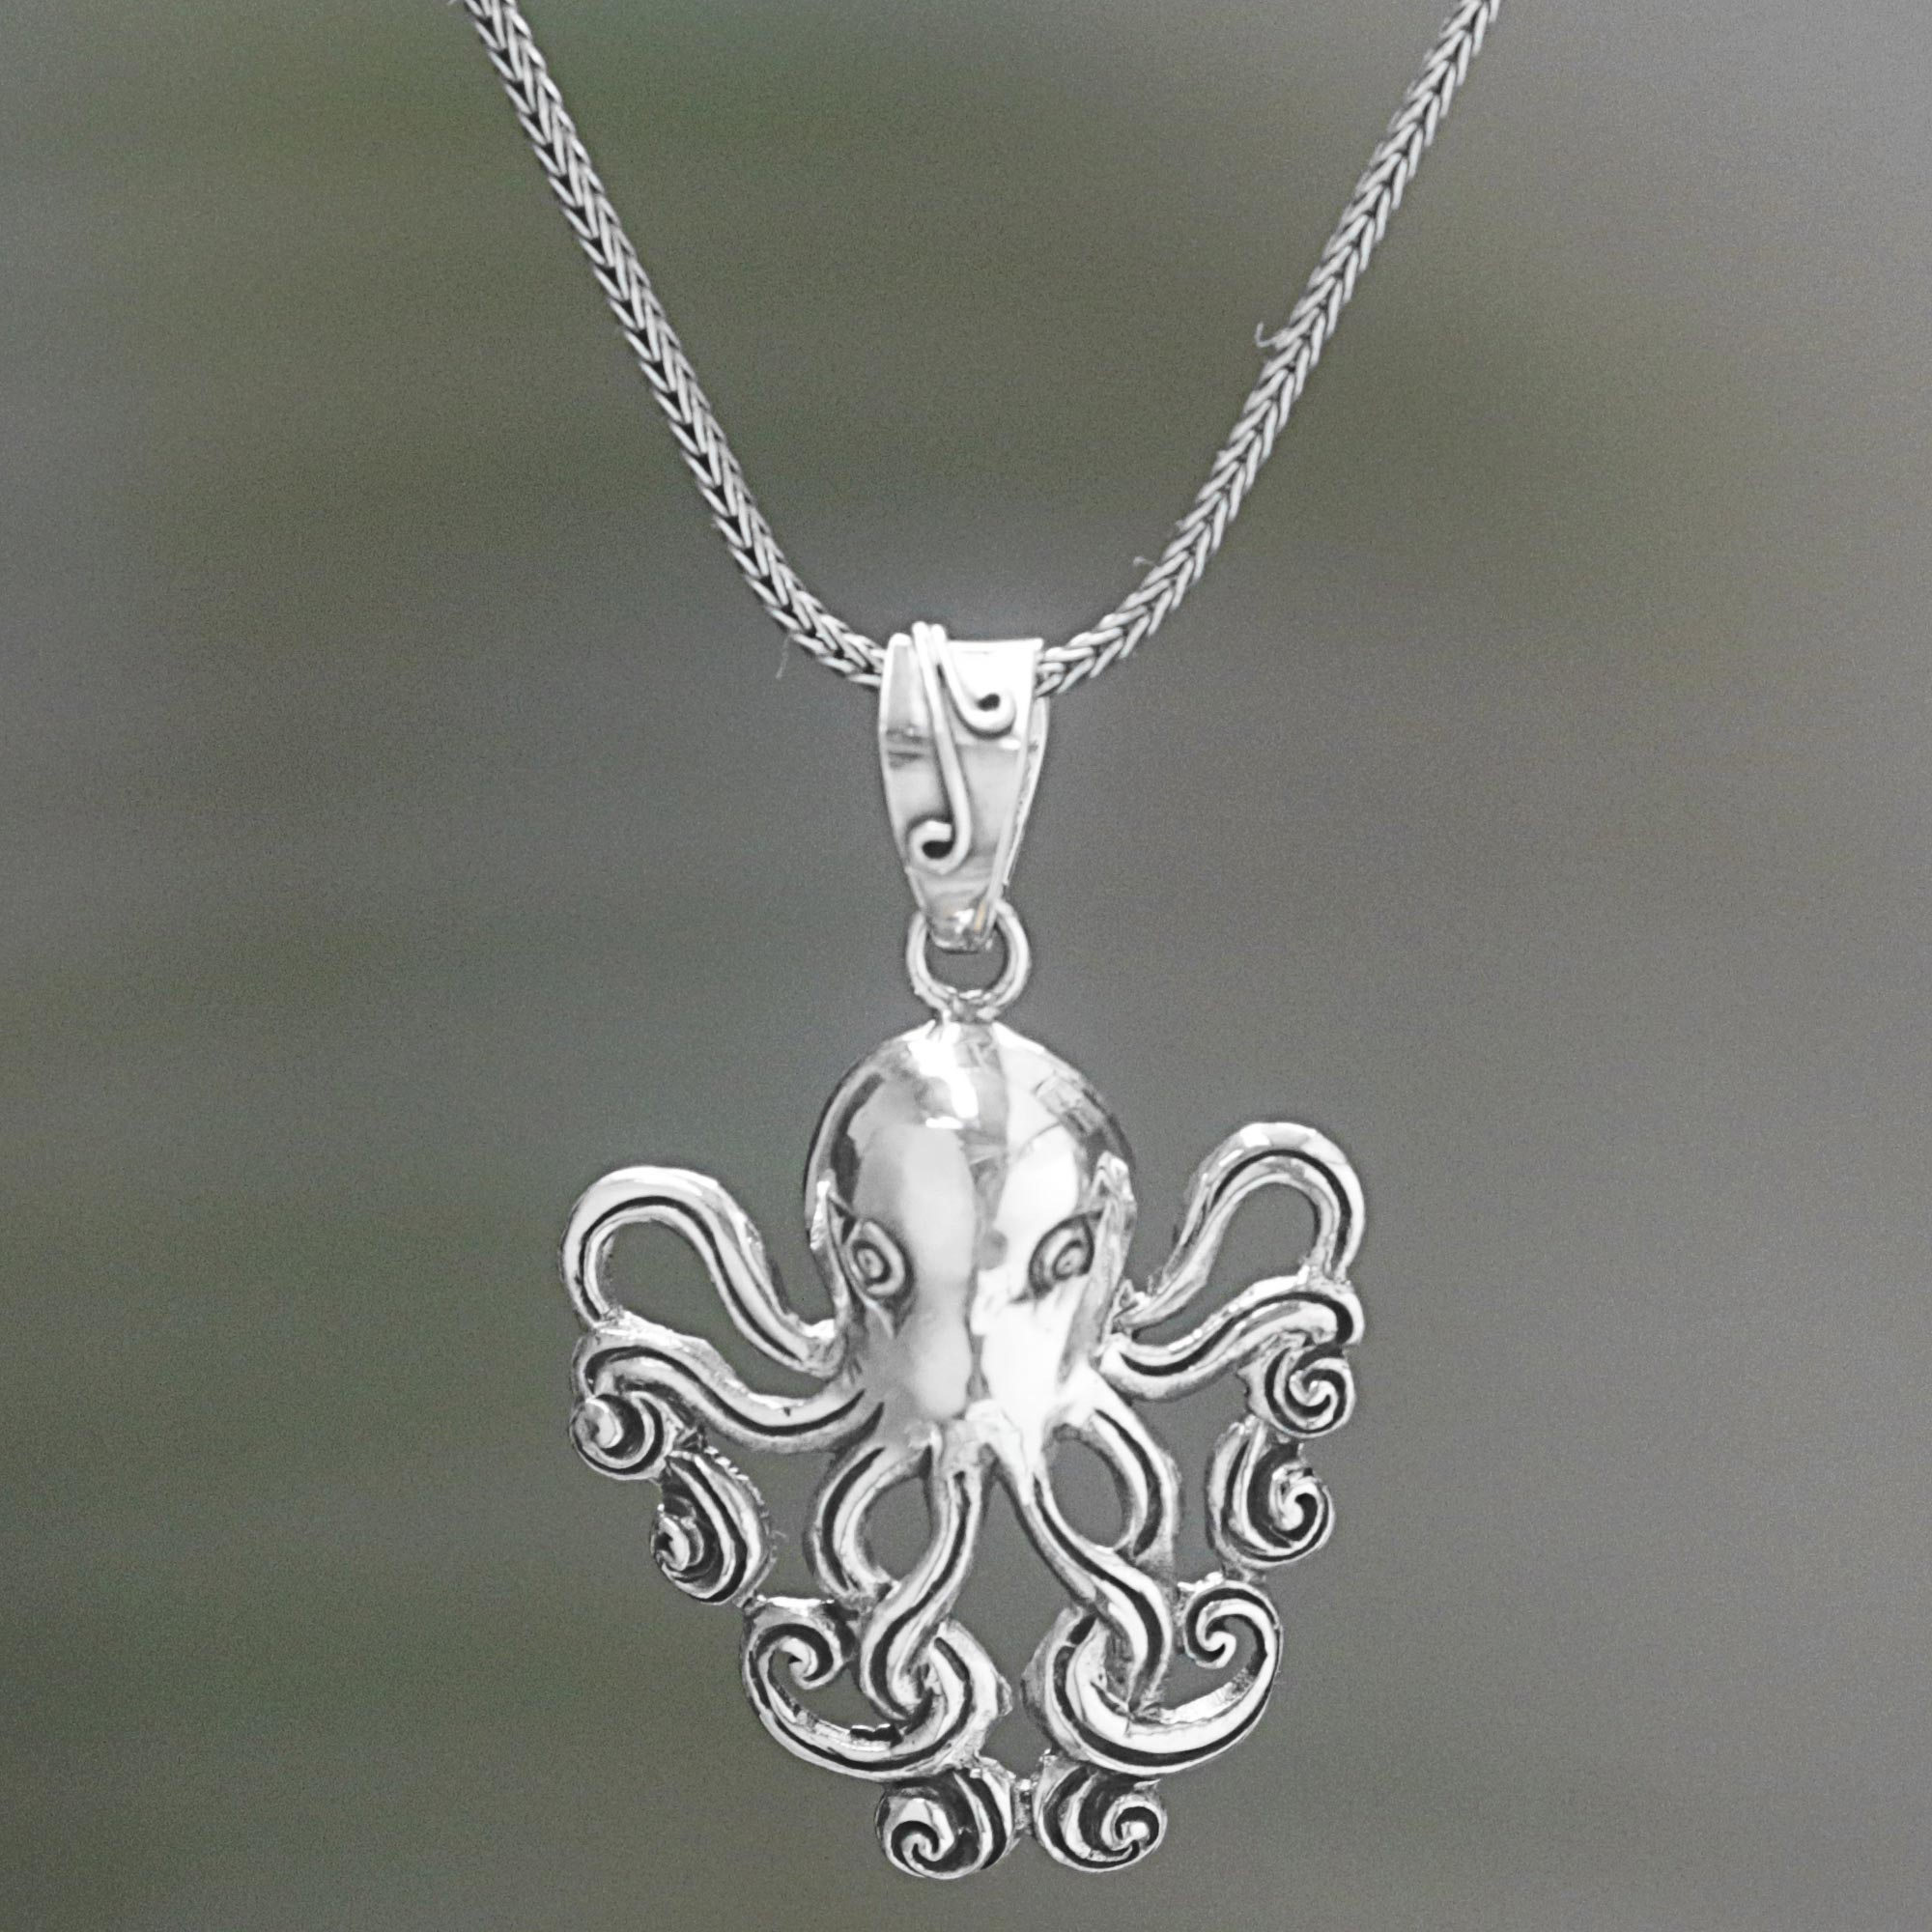 shopinde pendant collection hawaii the ss from product octopus in silver galatea sterling